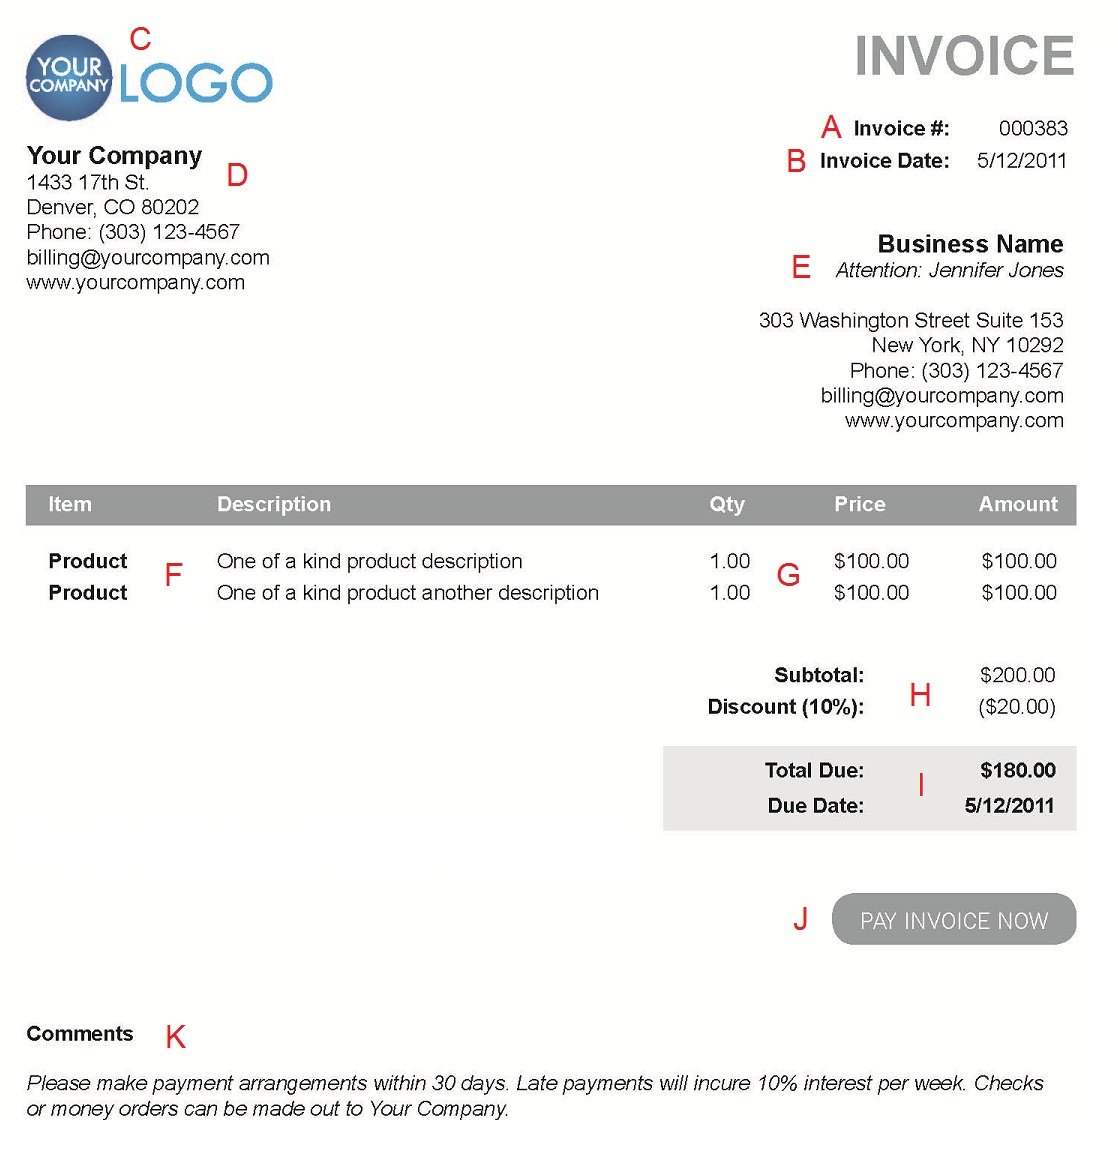 Conservativereviewus  Unique The  Different Sections Of An Electronic Payment Invoice With Foxy A  With Astonishing Independent Contractor Invoice Also Free Online Invoice Template In Addition How To Fill Out An Invoice And Invoice Lite As Well As Paypal Invoice Fees Additionally Electronic Invoice From Paysimplecom With Conservativereviewus  Foxy The  Different Sections Of An Electronic Payment Invoice With Astonishing A  And Unique Independent Contractor Invoice Also Free Online Invoice Template In Addition How To Fill Out An Invoice From Paysimplecom